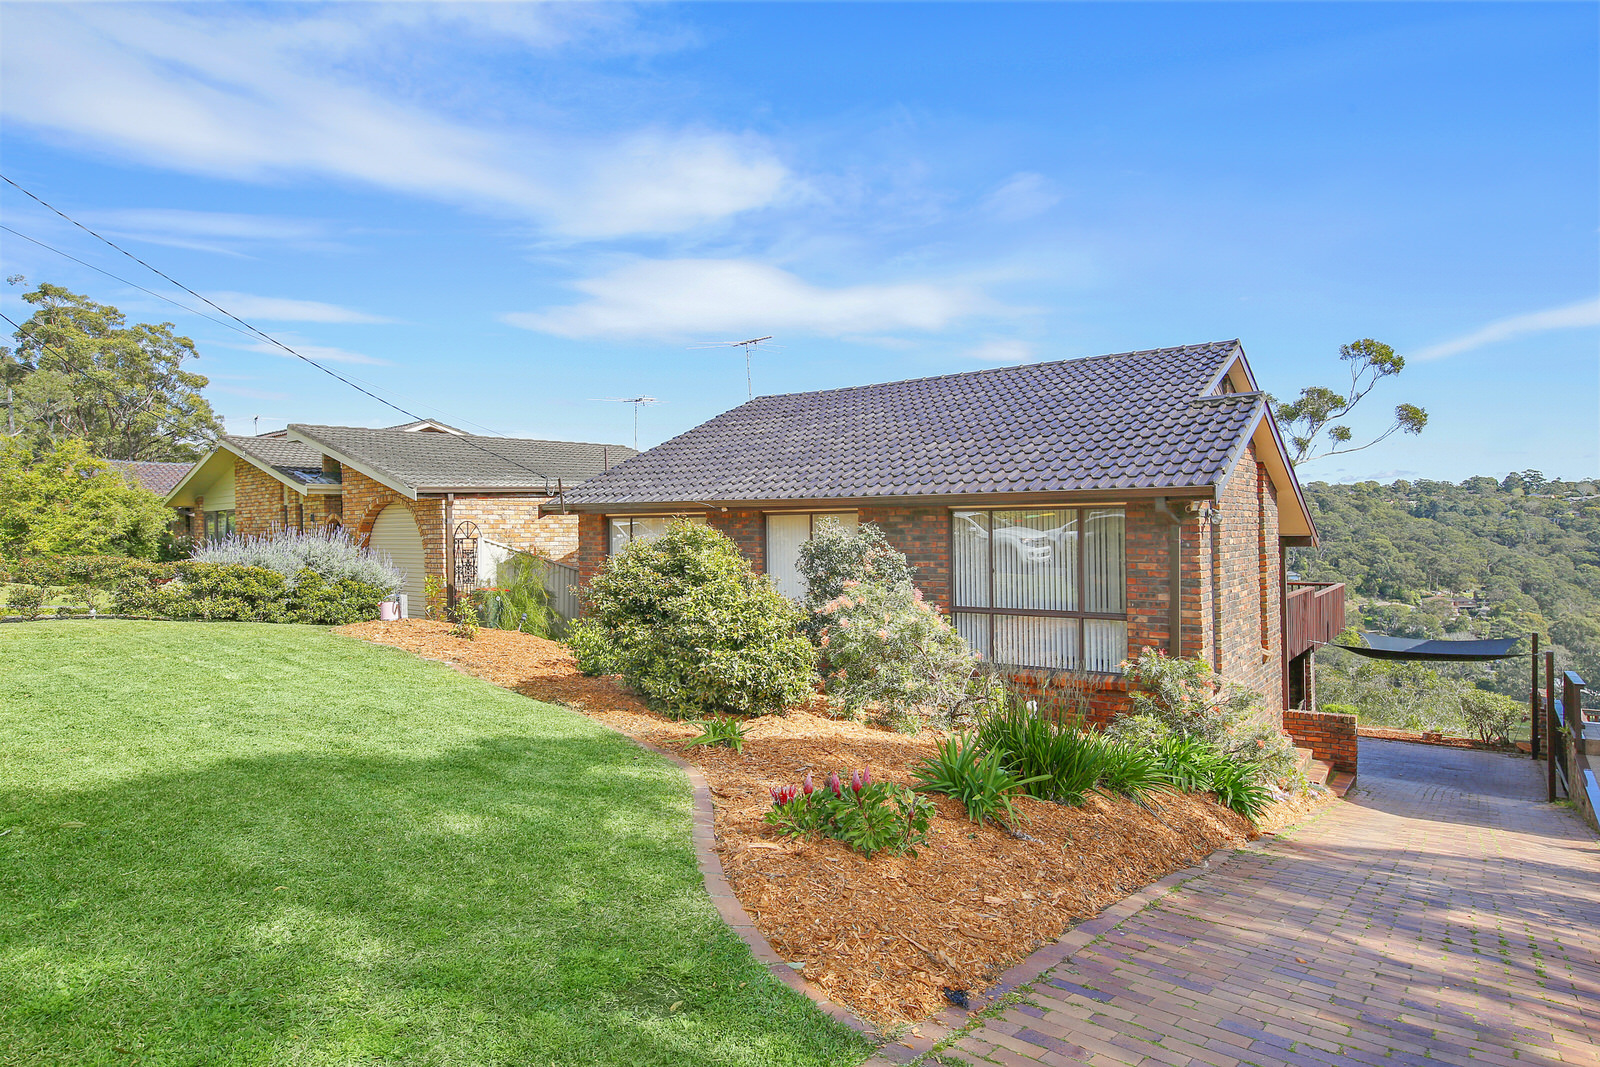 15 Rata Place Sutherland Nsw 2232 Sold House 2012231194